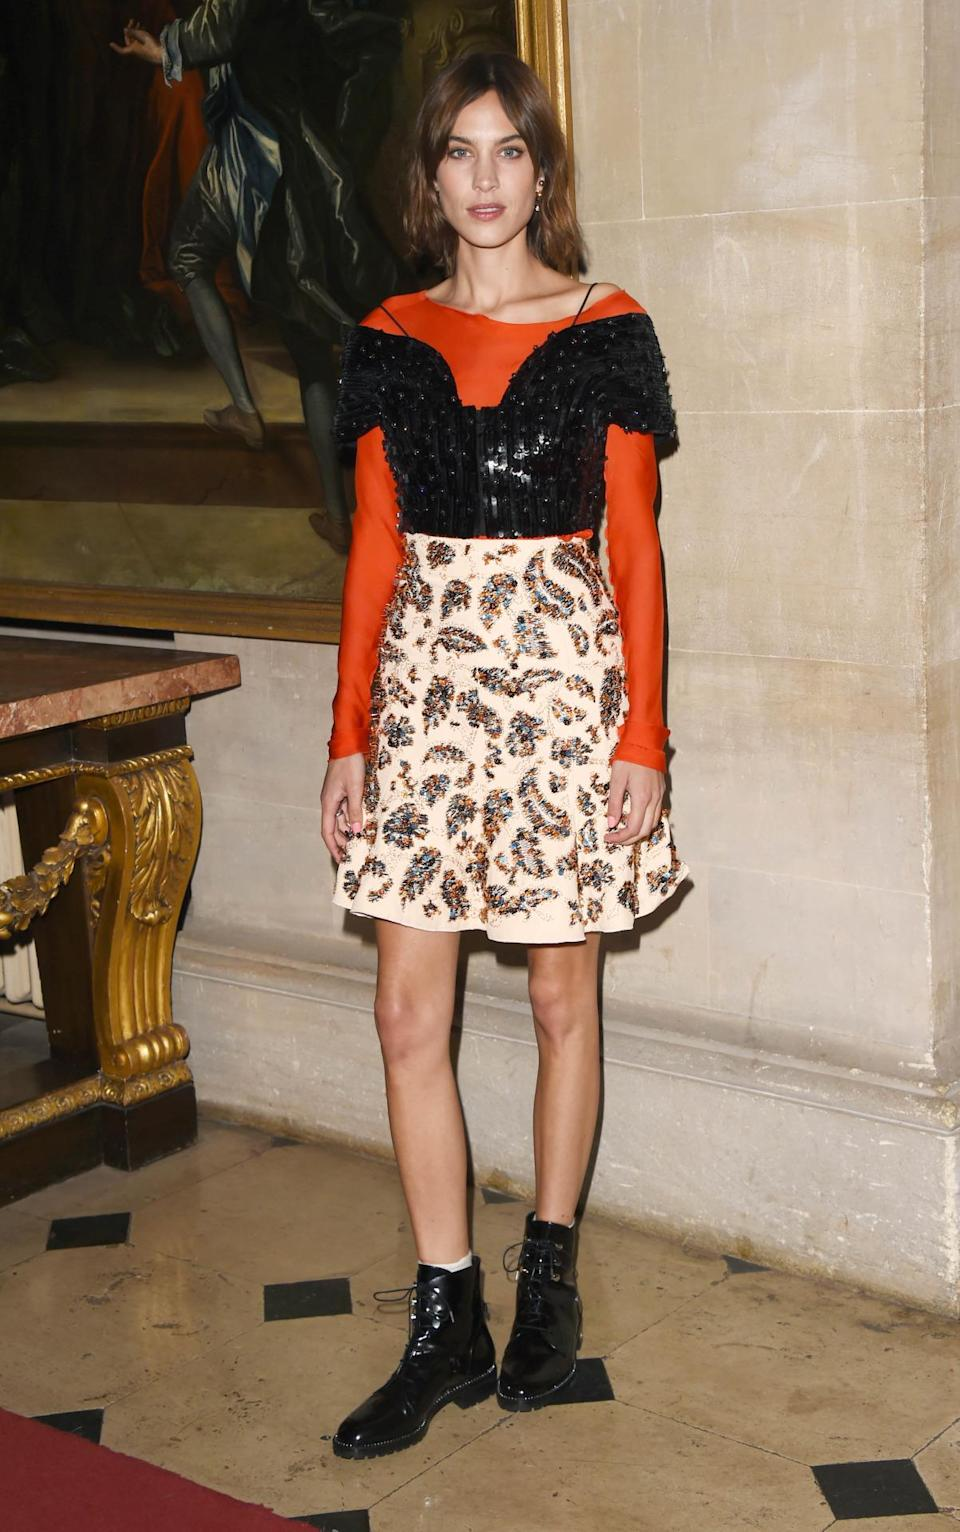 <p>Alexa Chung really can do no wrong. The style icon rocked up to the Dior Cruise 2017 show at Blenheim Palace looking as on point as always in an outfit that anyone else would've looked awful in. We need to know her secret, pronto. <i>[Photo: Getty Images]</i></p>